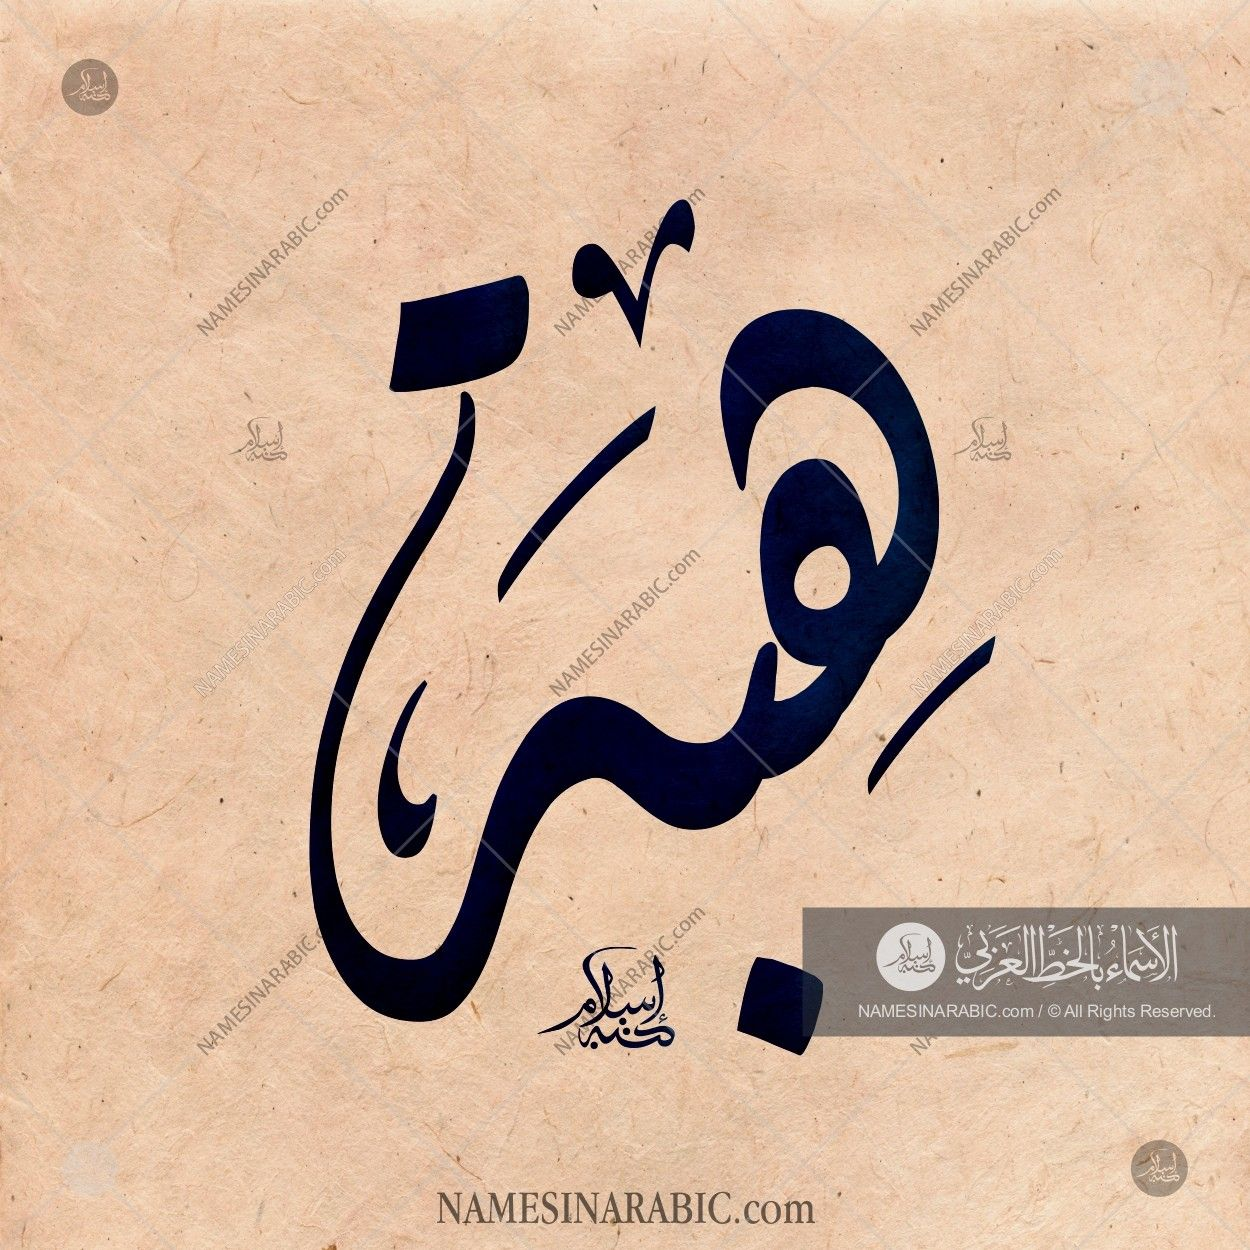 Hibba هبة Names In Arabic Calligraphy Name 1559 Calligraphy Name Calligraphy Words Arabic Calligraphy